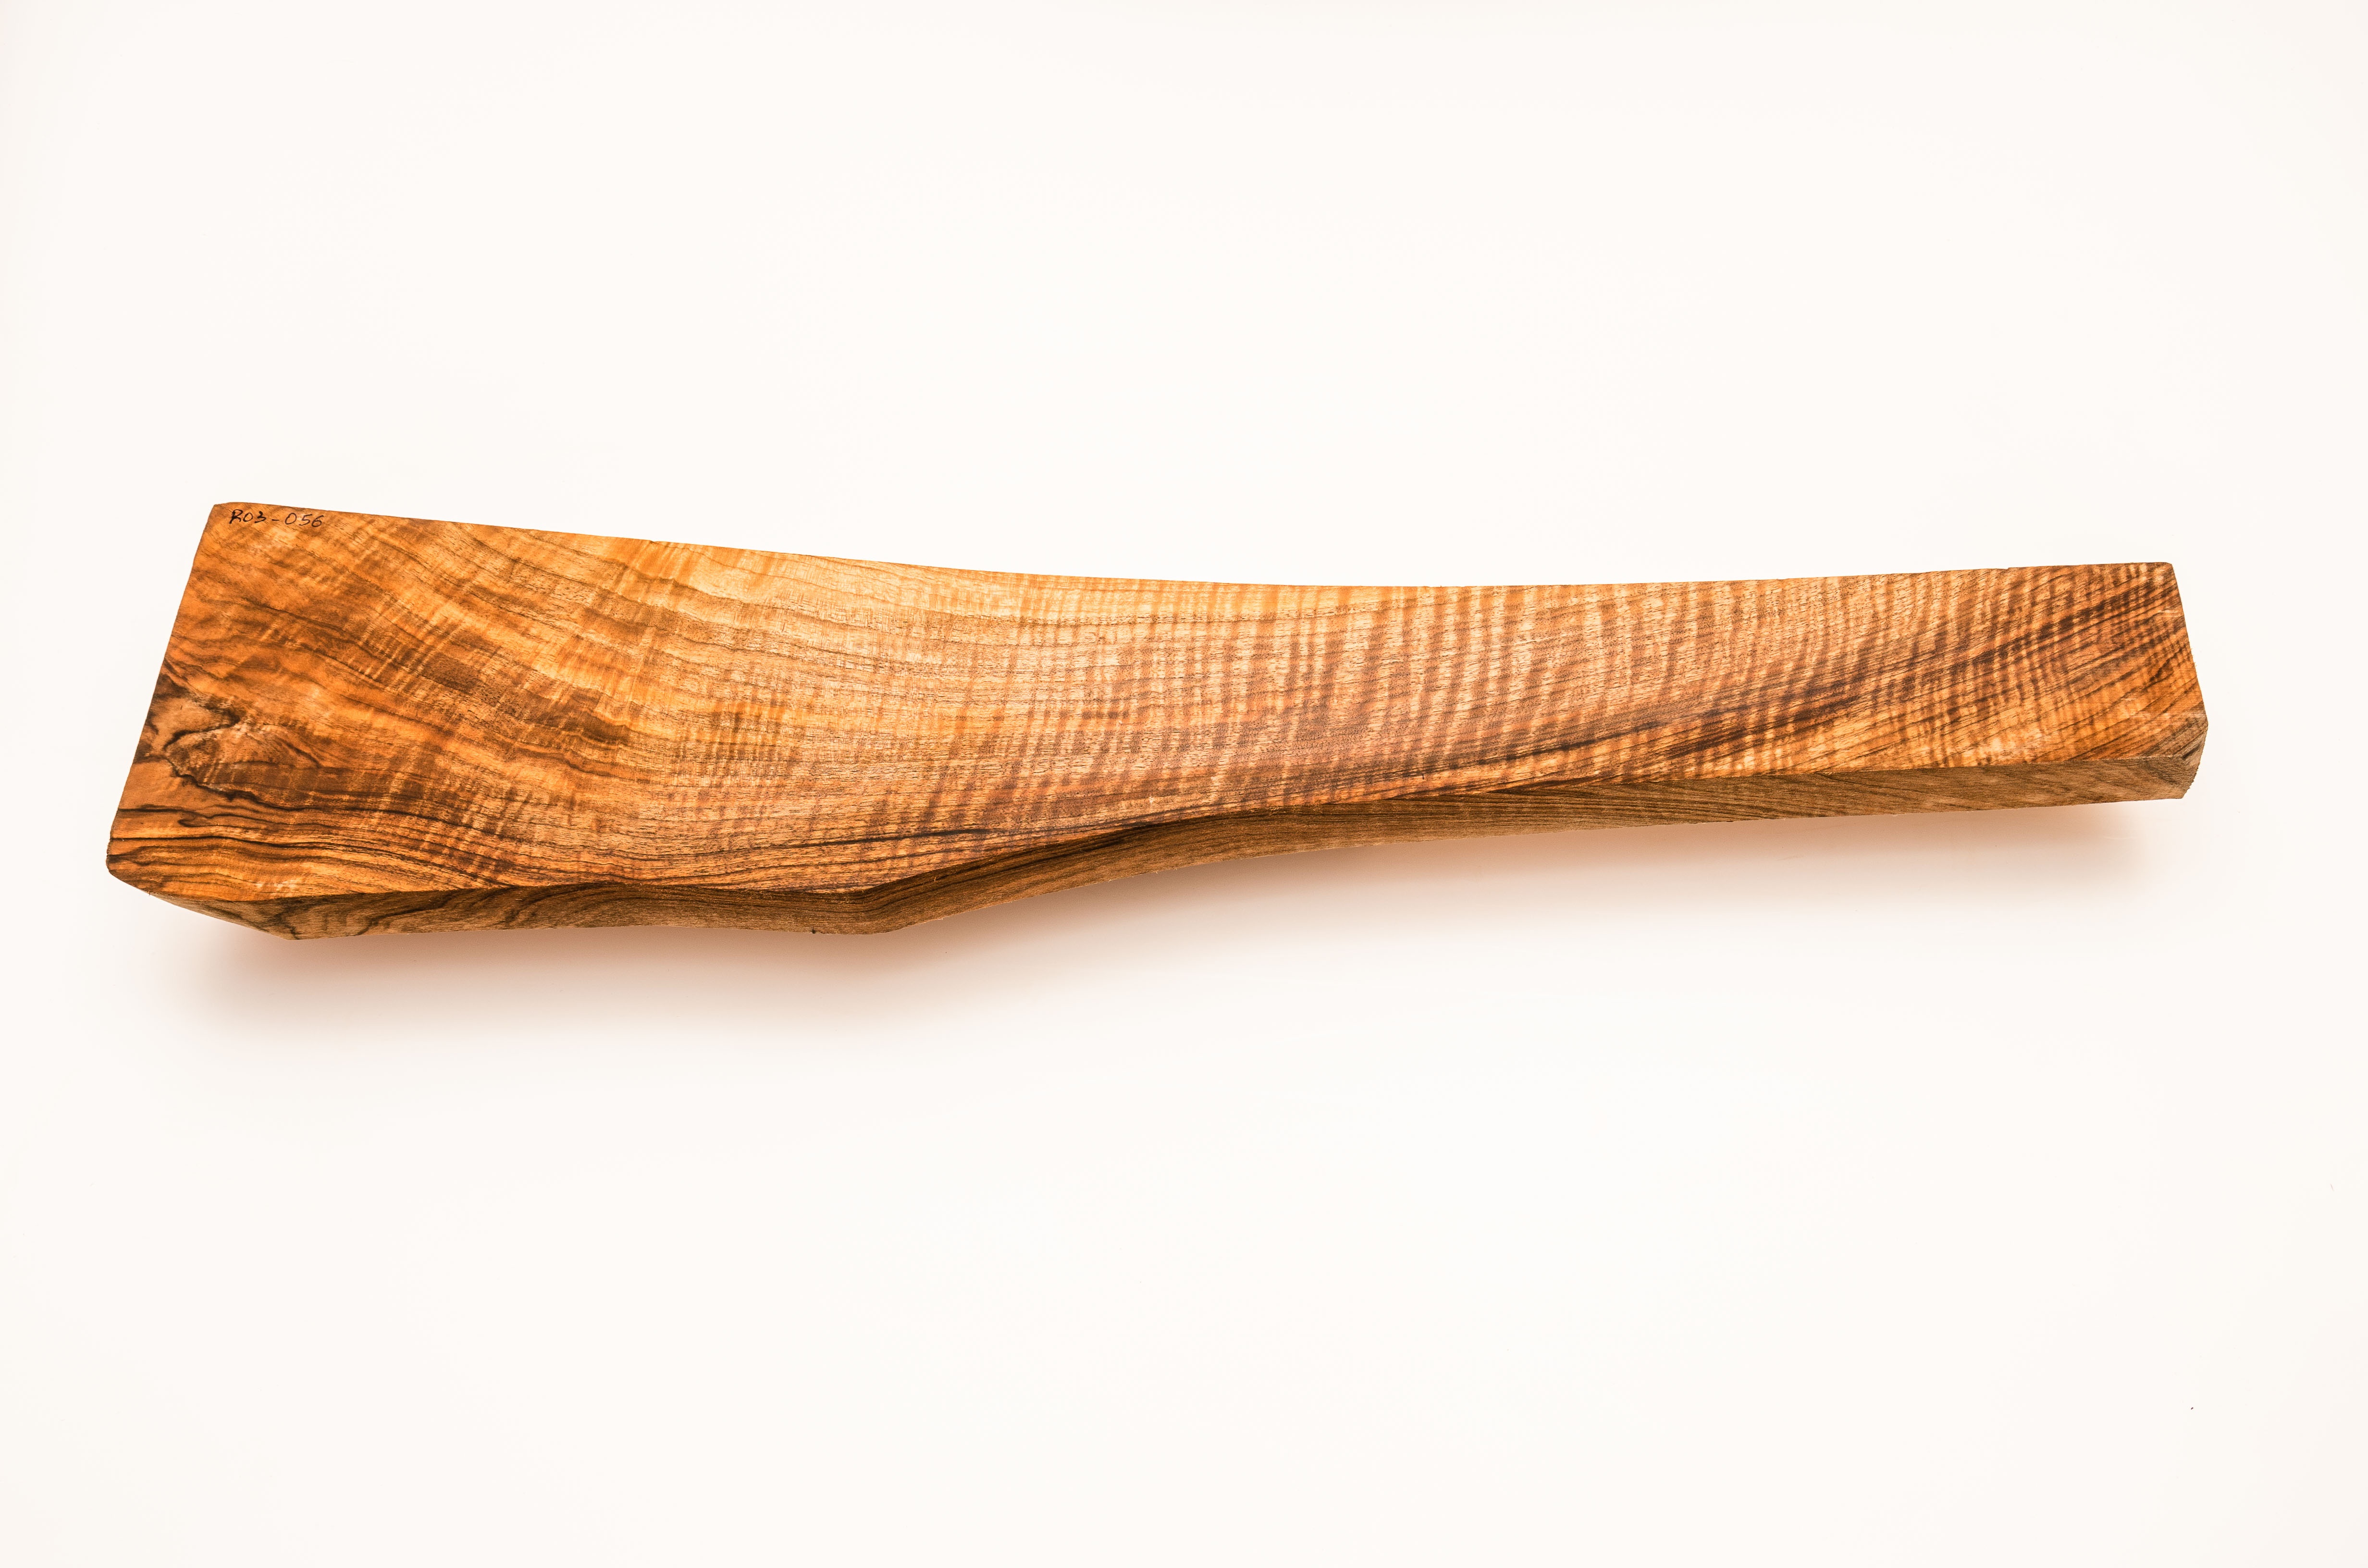 walnut_stock_blanks_for_guns_and_rifles-1497